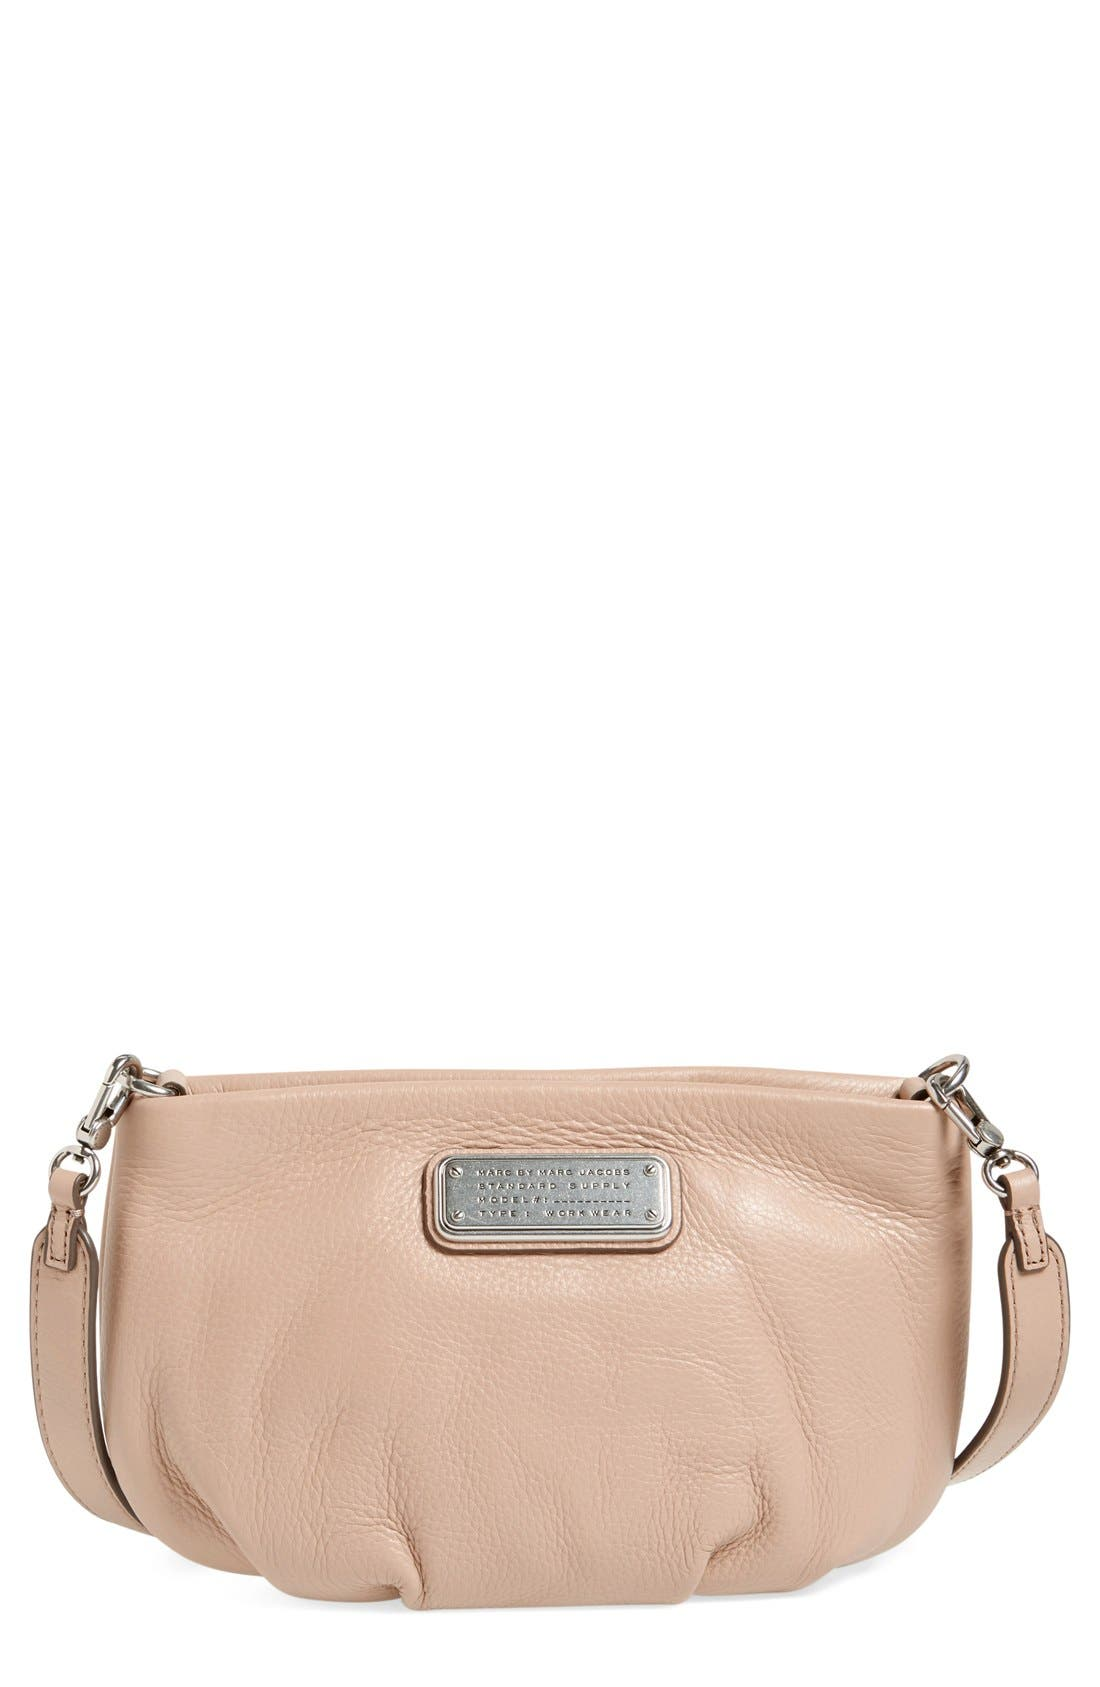 Main Image - MARC BY MARC JACOBS 'New Q - Percy' Leather Crossbody Bag